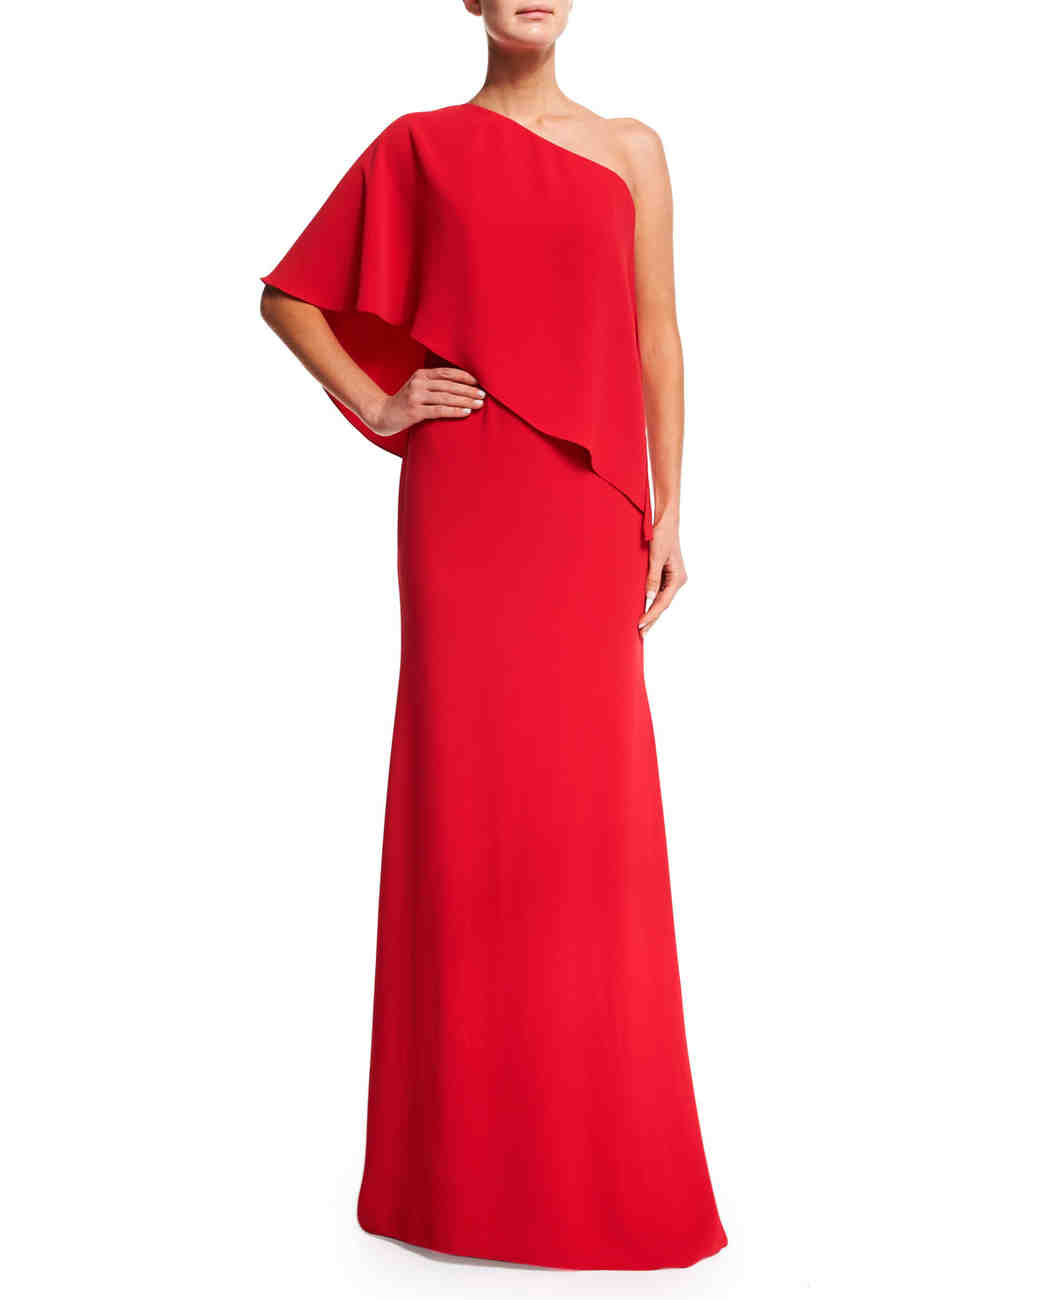 Red One-Shouldered Gown